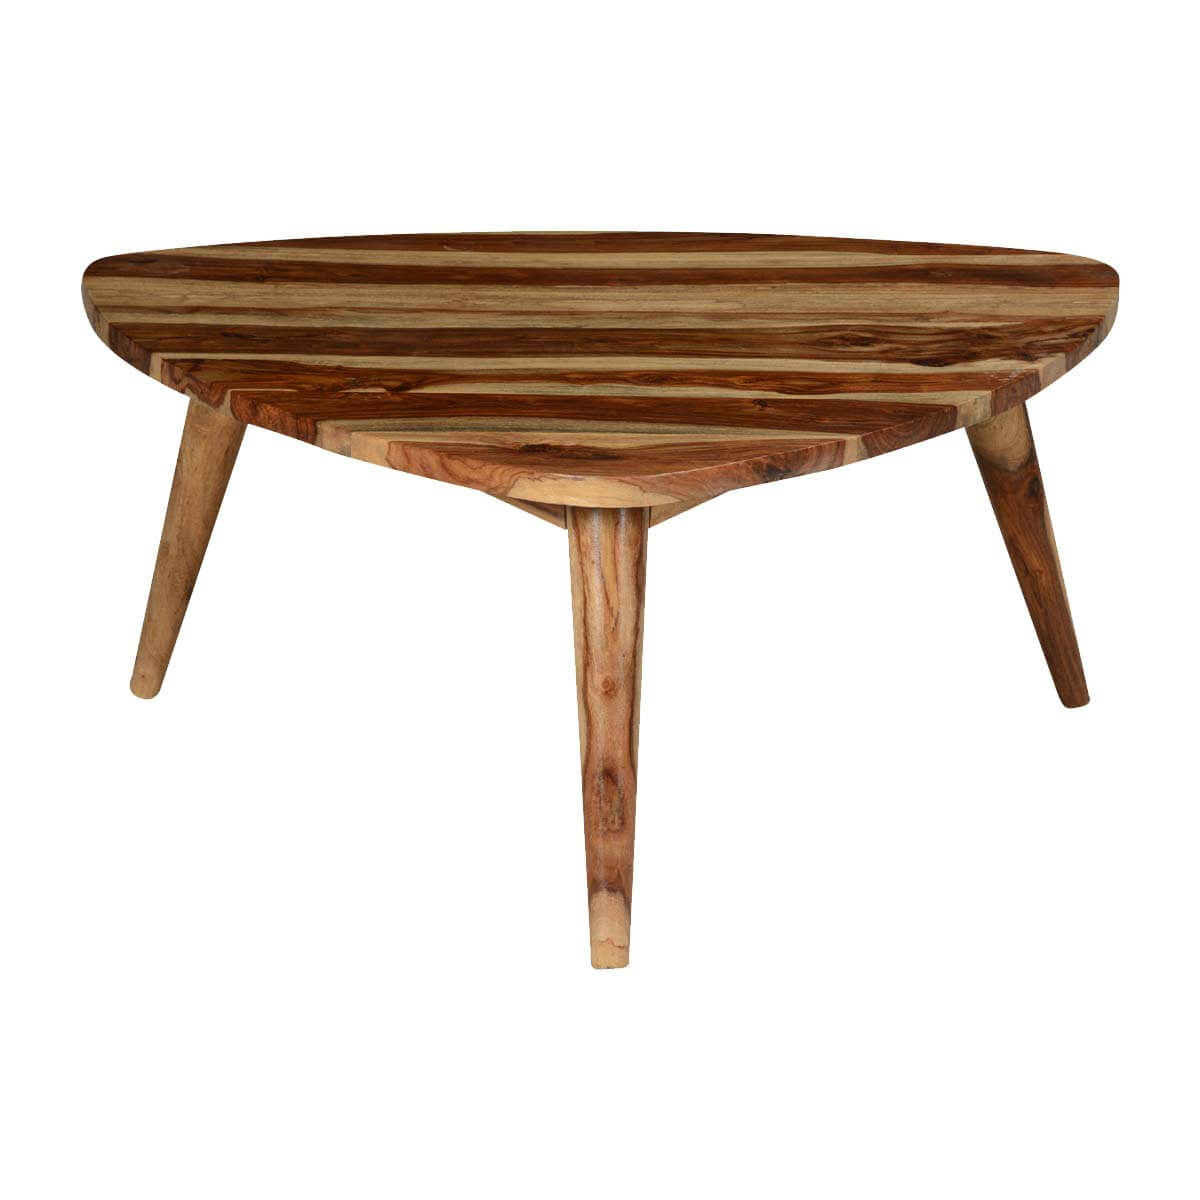 Couchtisch Dreieckig Holz Triangular Solid Wood Coffee Table